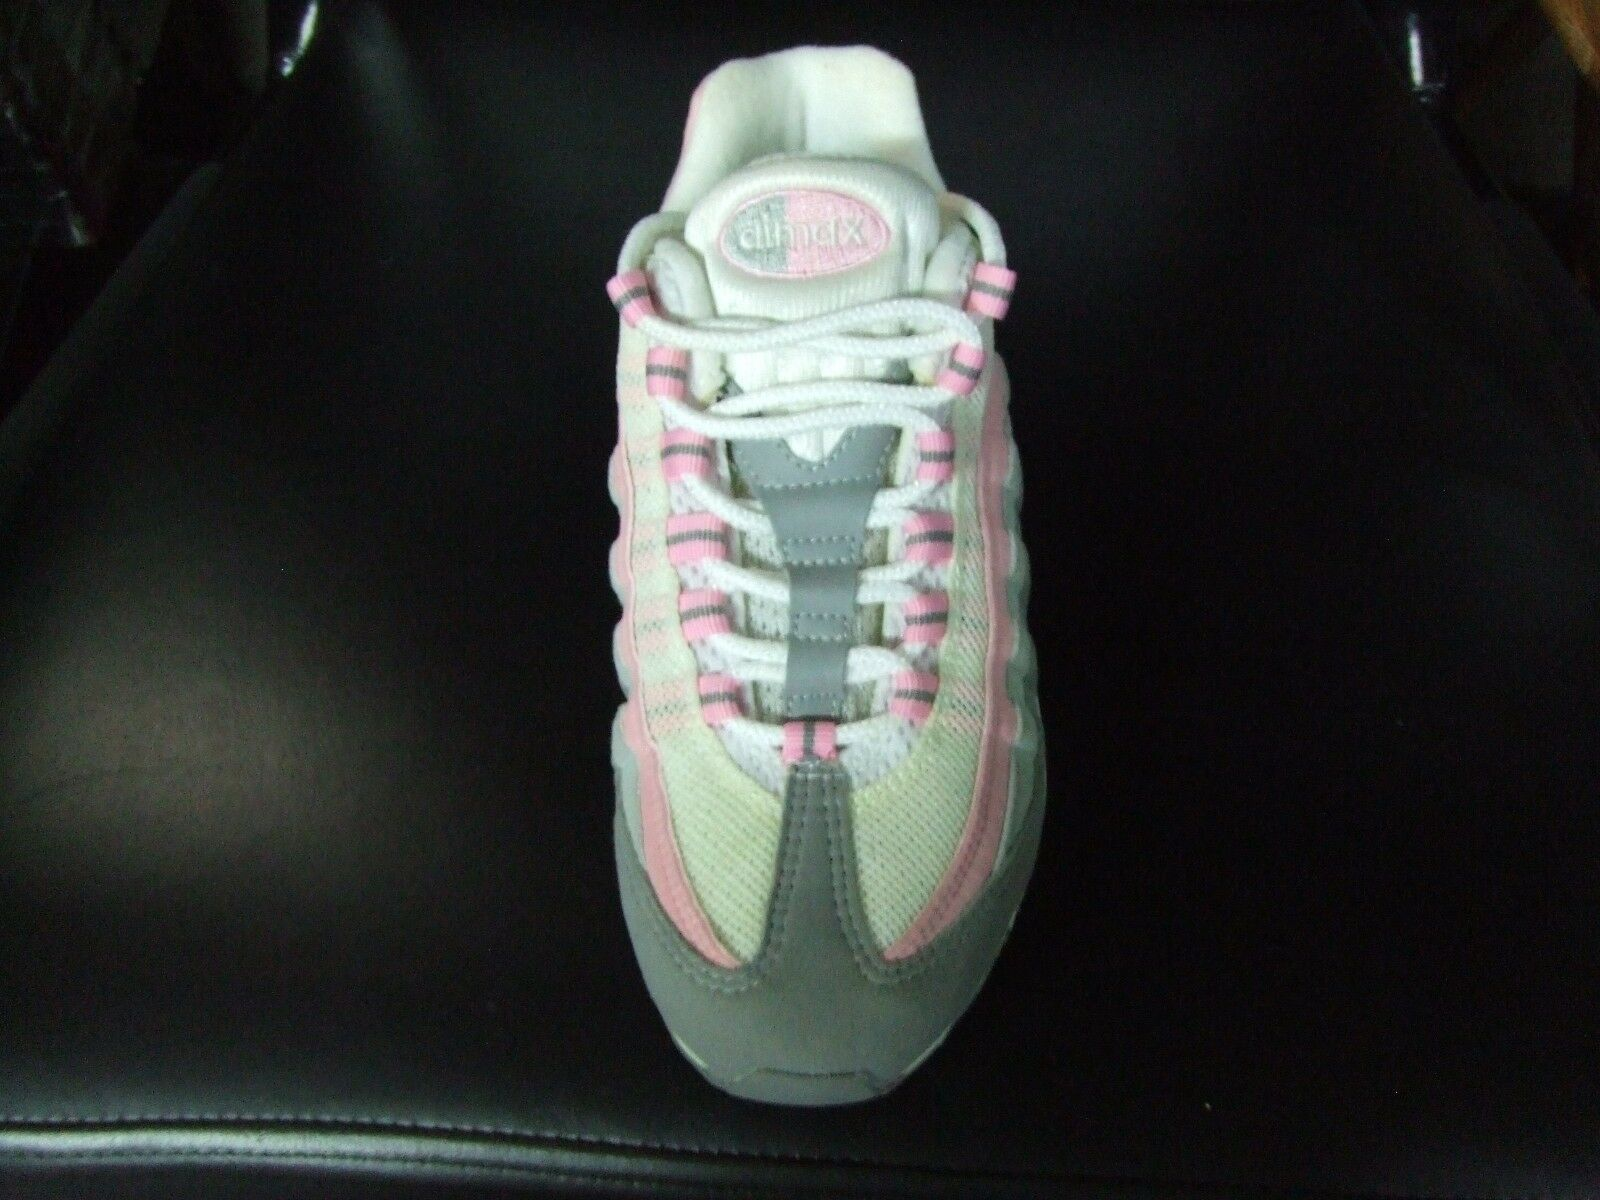 Nike Women's Air Max 95 Sizes 6.5 White Real Pink Pink Pink Medium Grey New 2005 e14e28